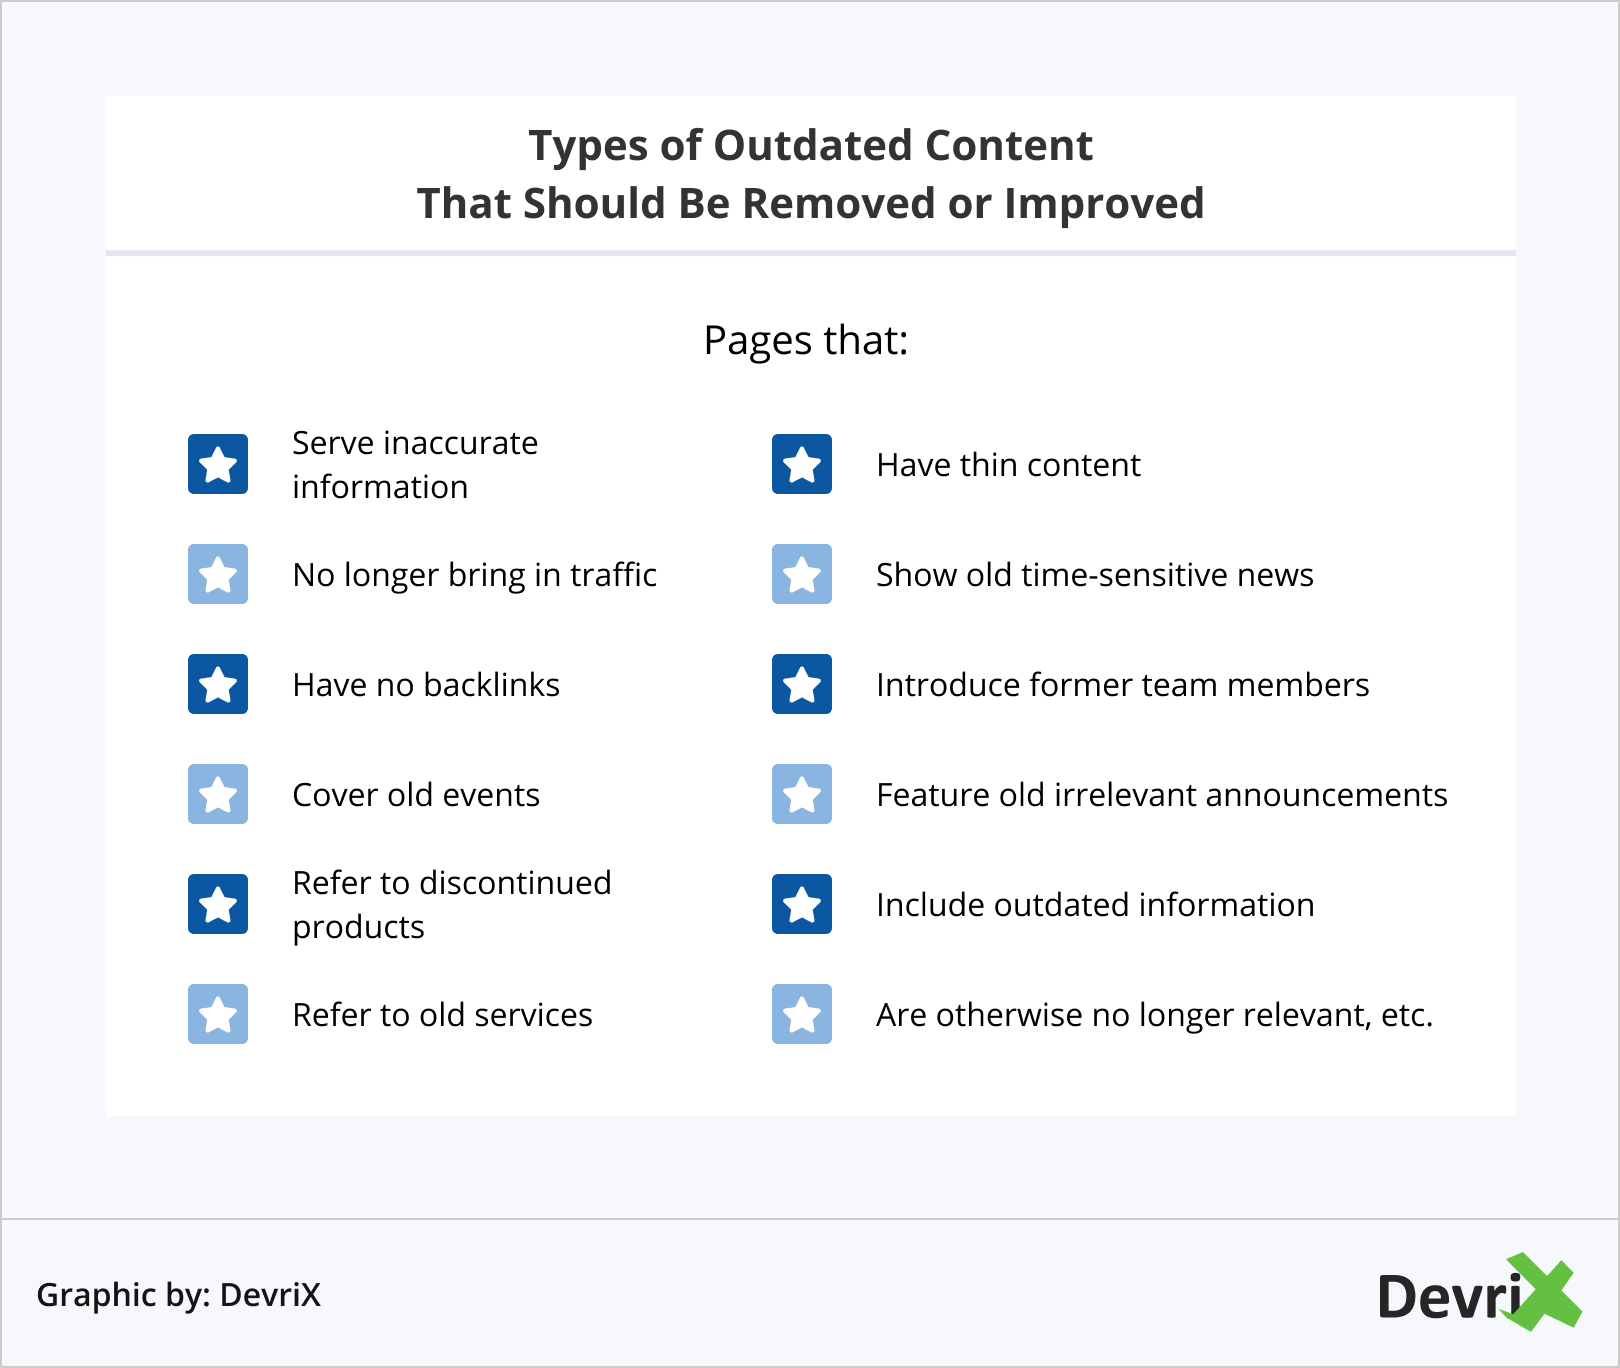 Types of Outdated Content That Should Be Removed or Improved